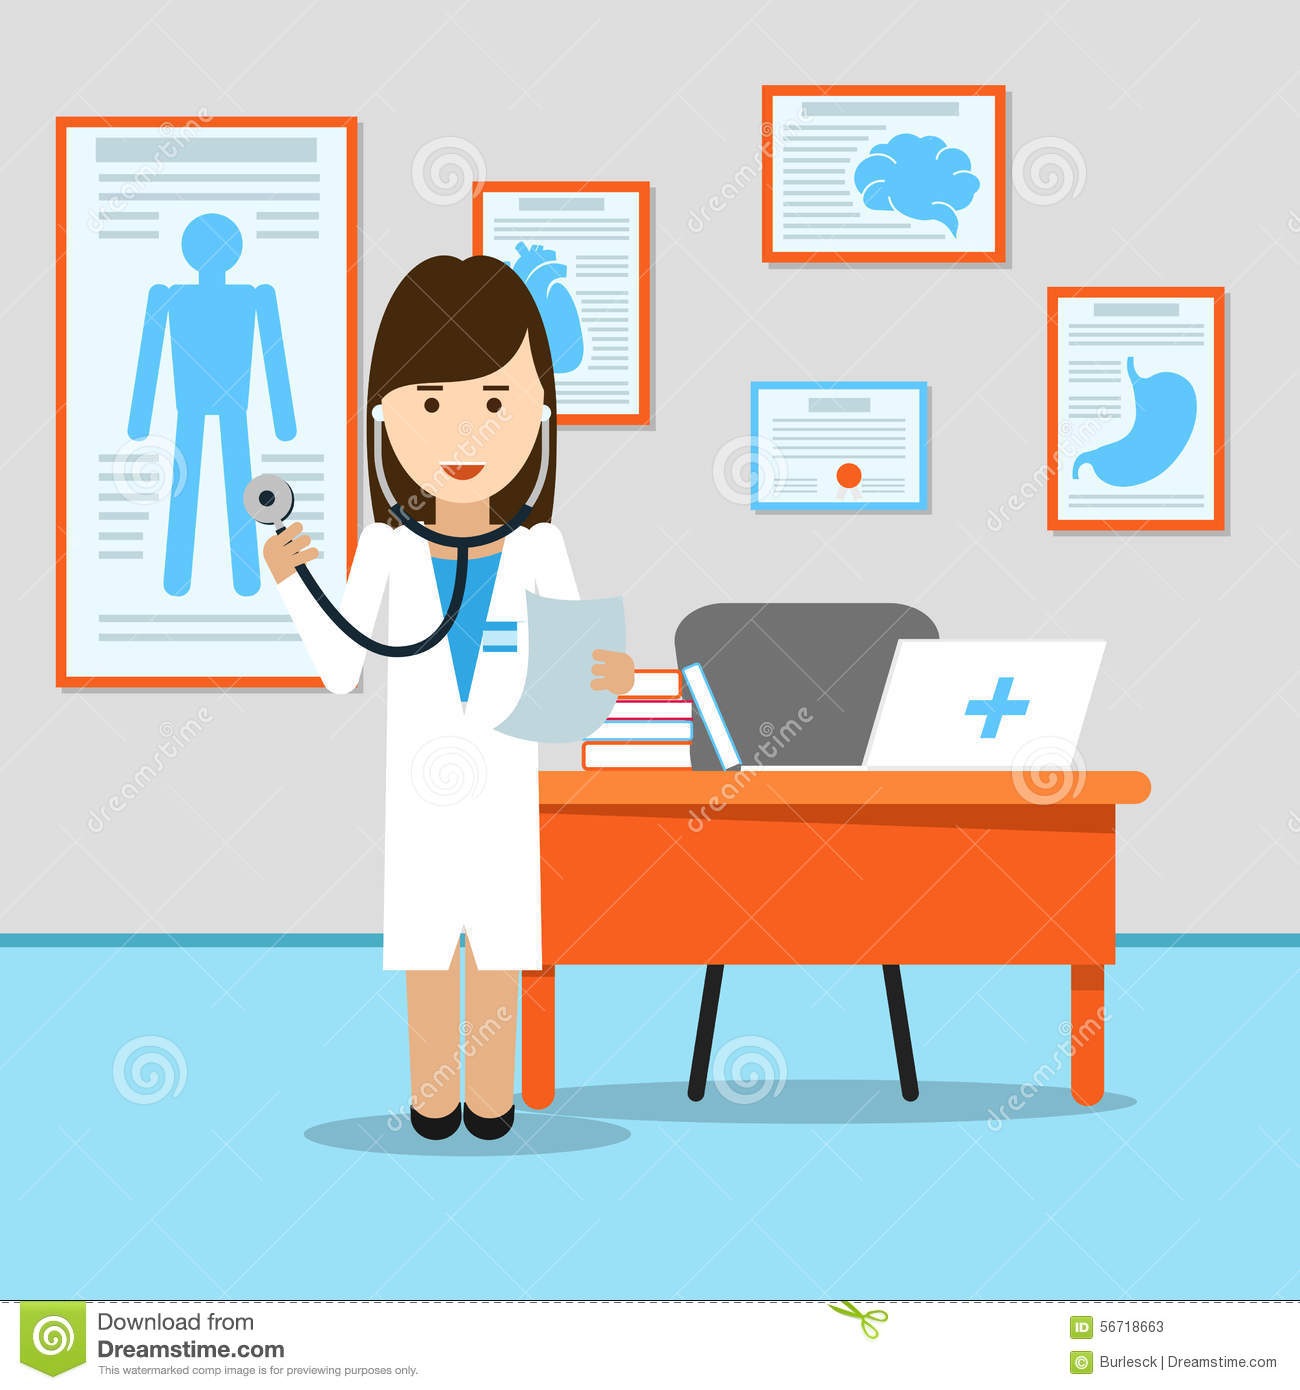 Medical Doctor At The Table Stock Vector - Illustration of